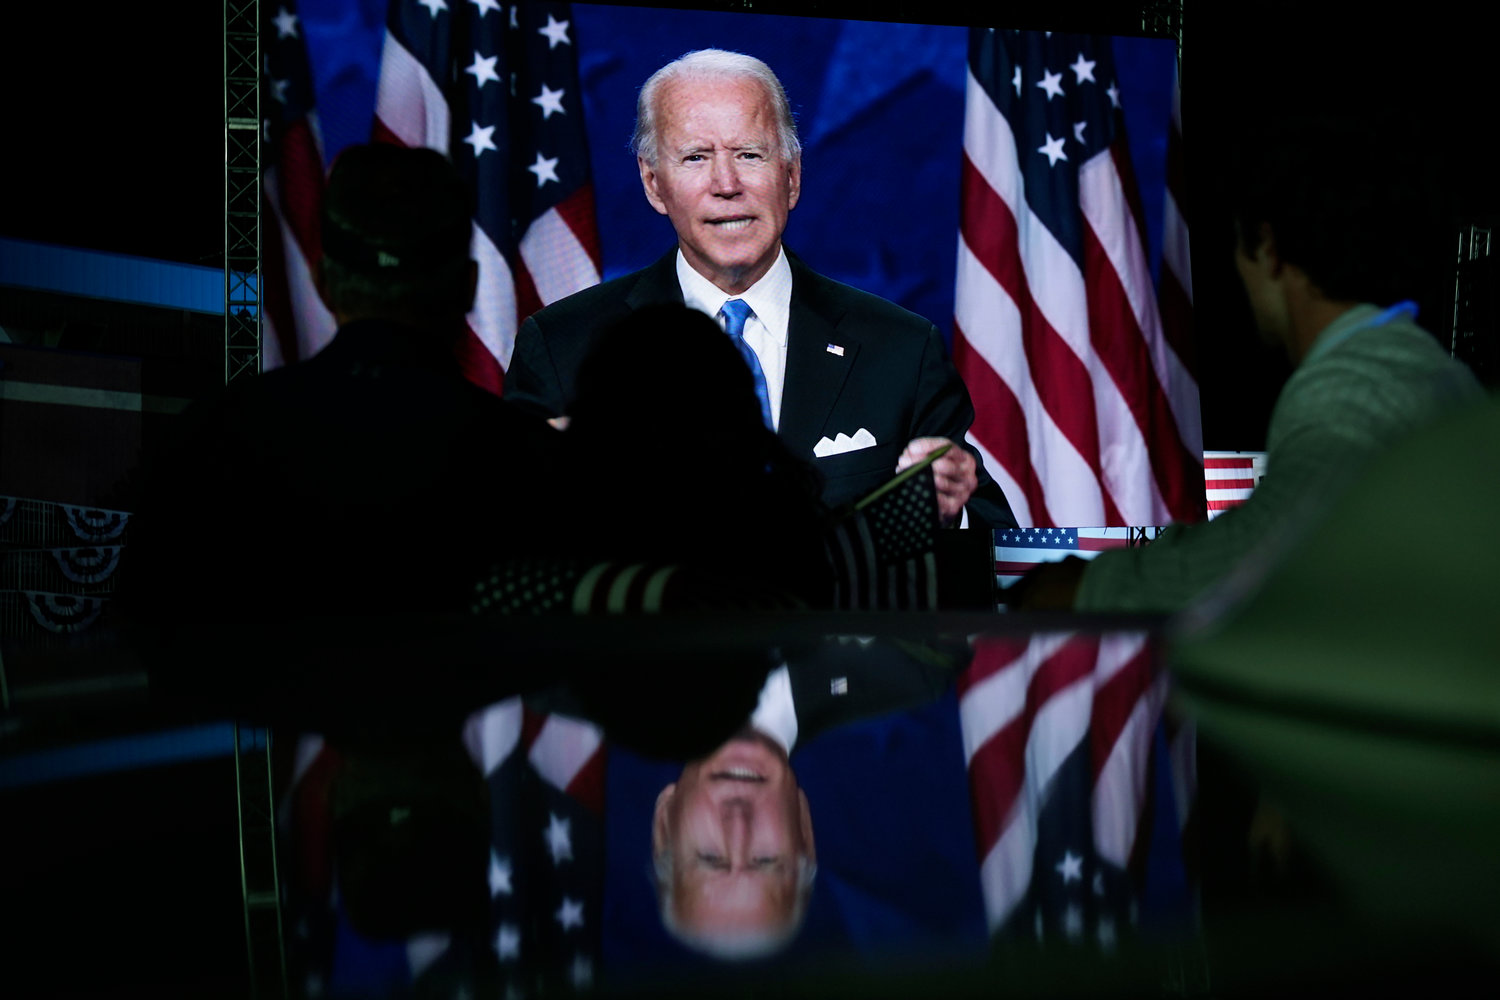 Supporters watch the program outside the venue where Democratic presidential candidate former Vice President Joe Biden is speaking, during the final day of the Democratic National Convention, Thursday, Aug. 20, 2020, at the Chase Center in Wilmington, Del. (AP Photo/Carolyn Kaster)